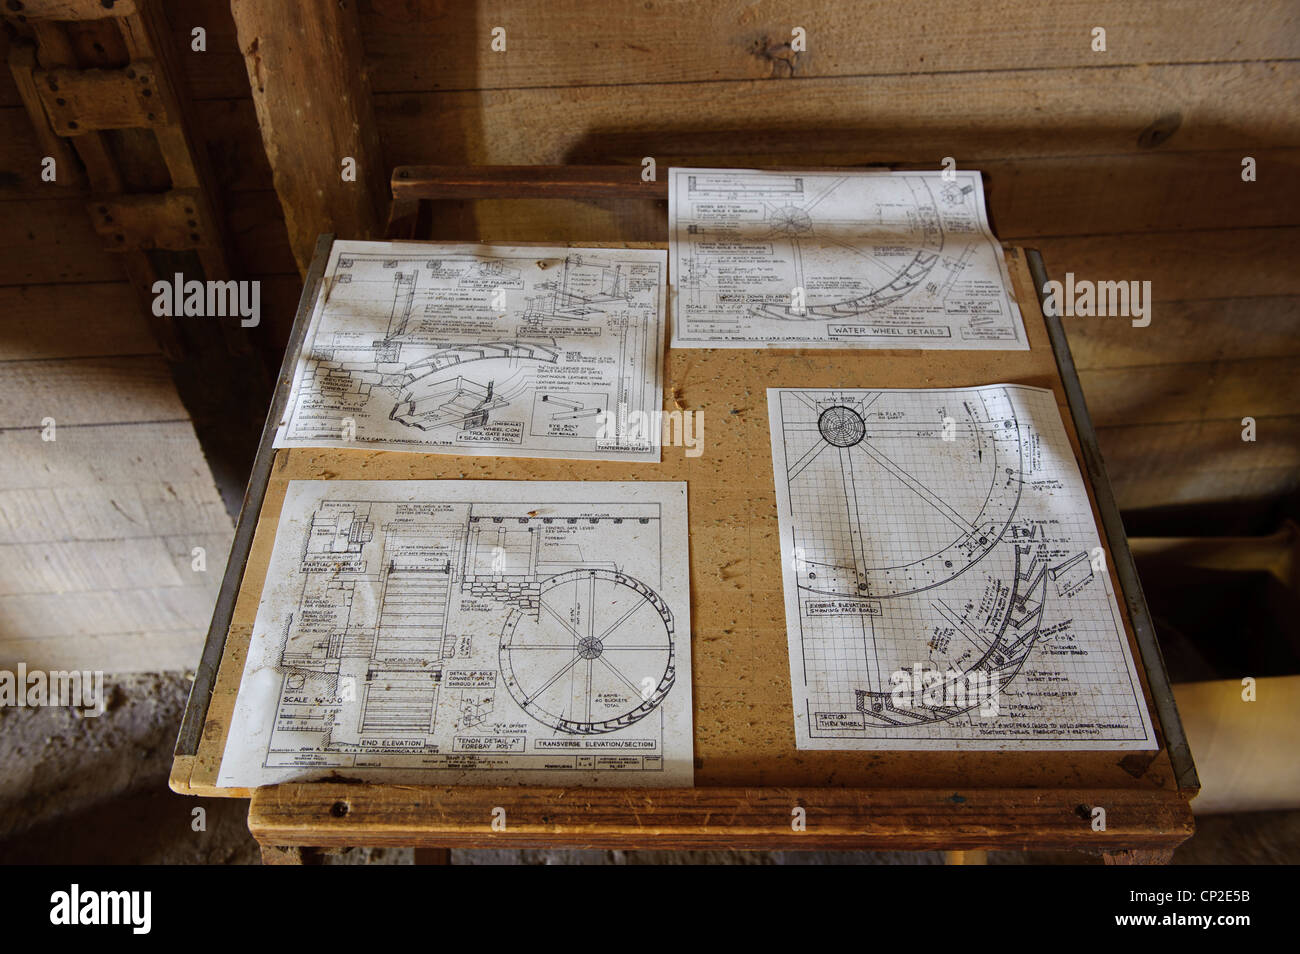 Old blueprint stock photos old blueprint stock images alamy blueprint diagram of water wheel at aberdeen mills stock image malvernweather Image collections